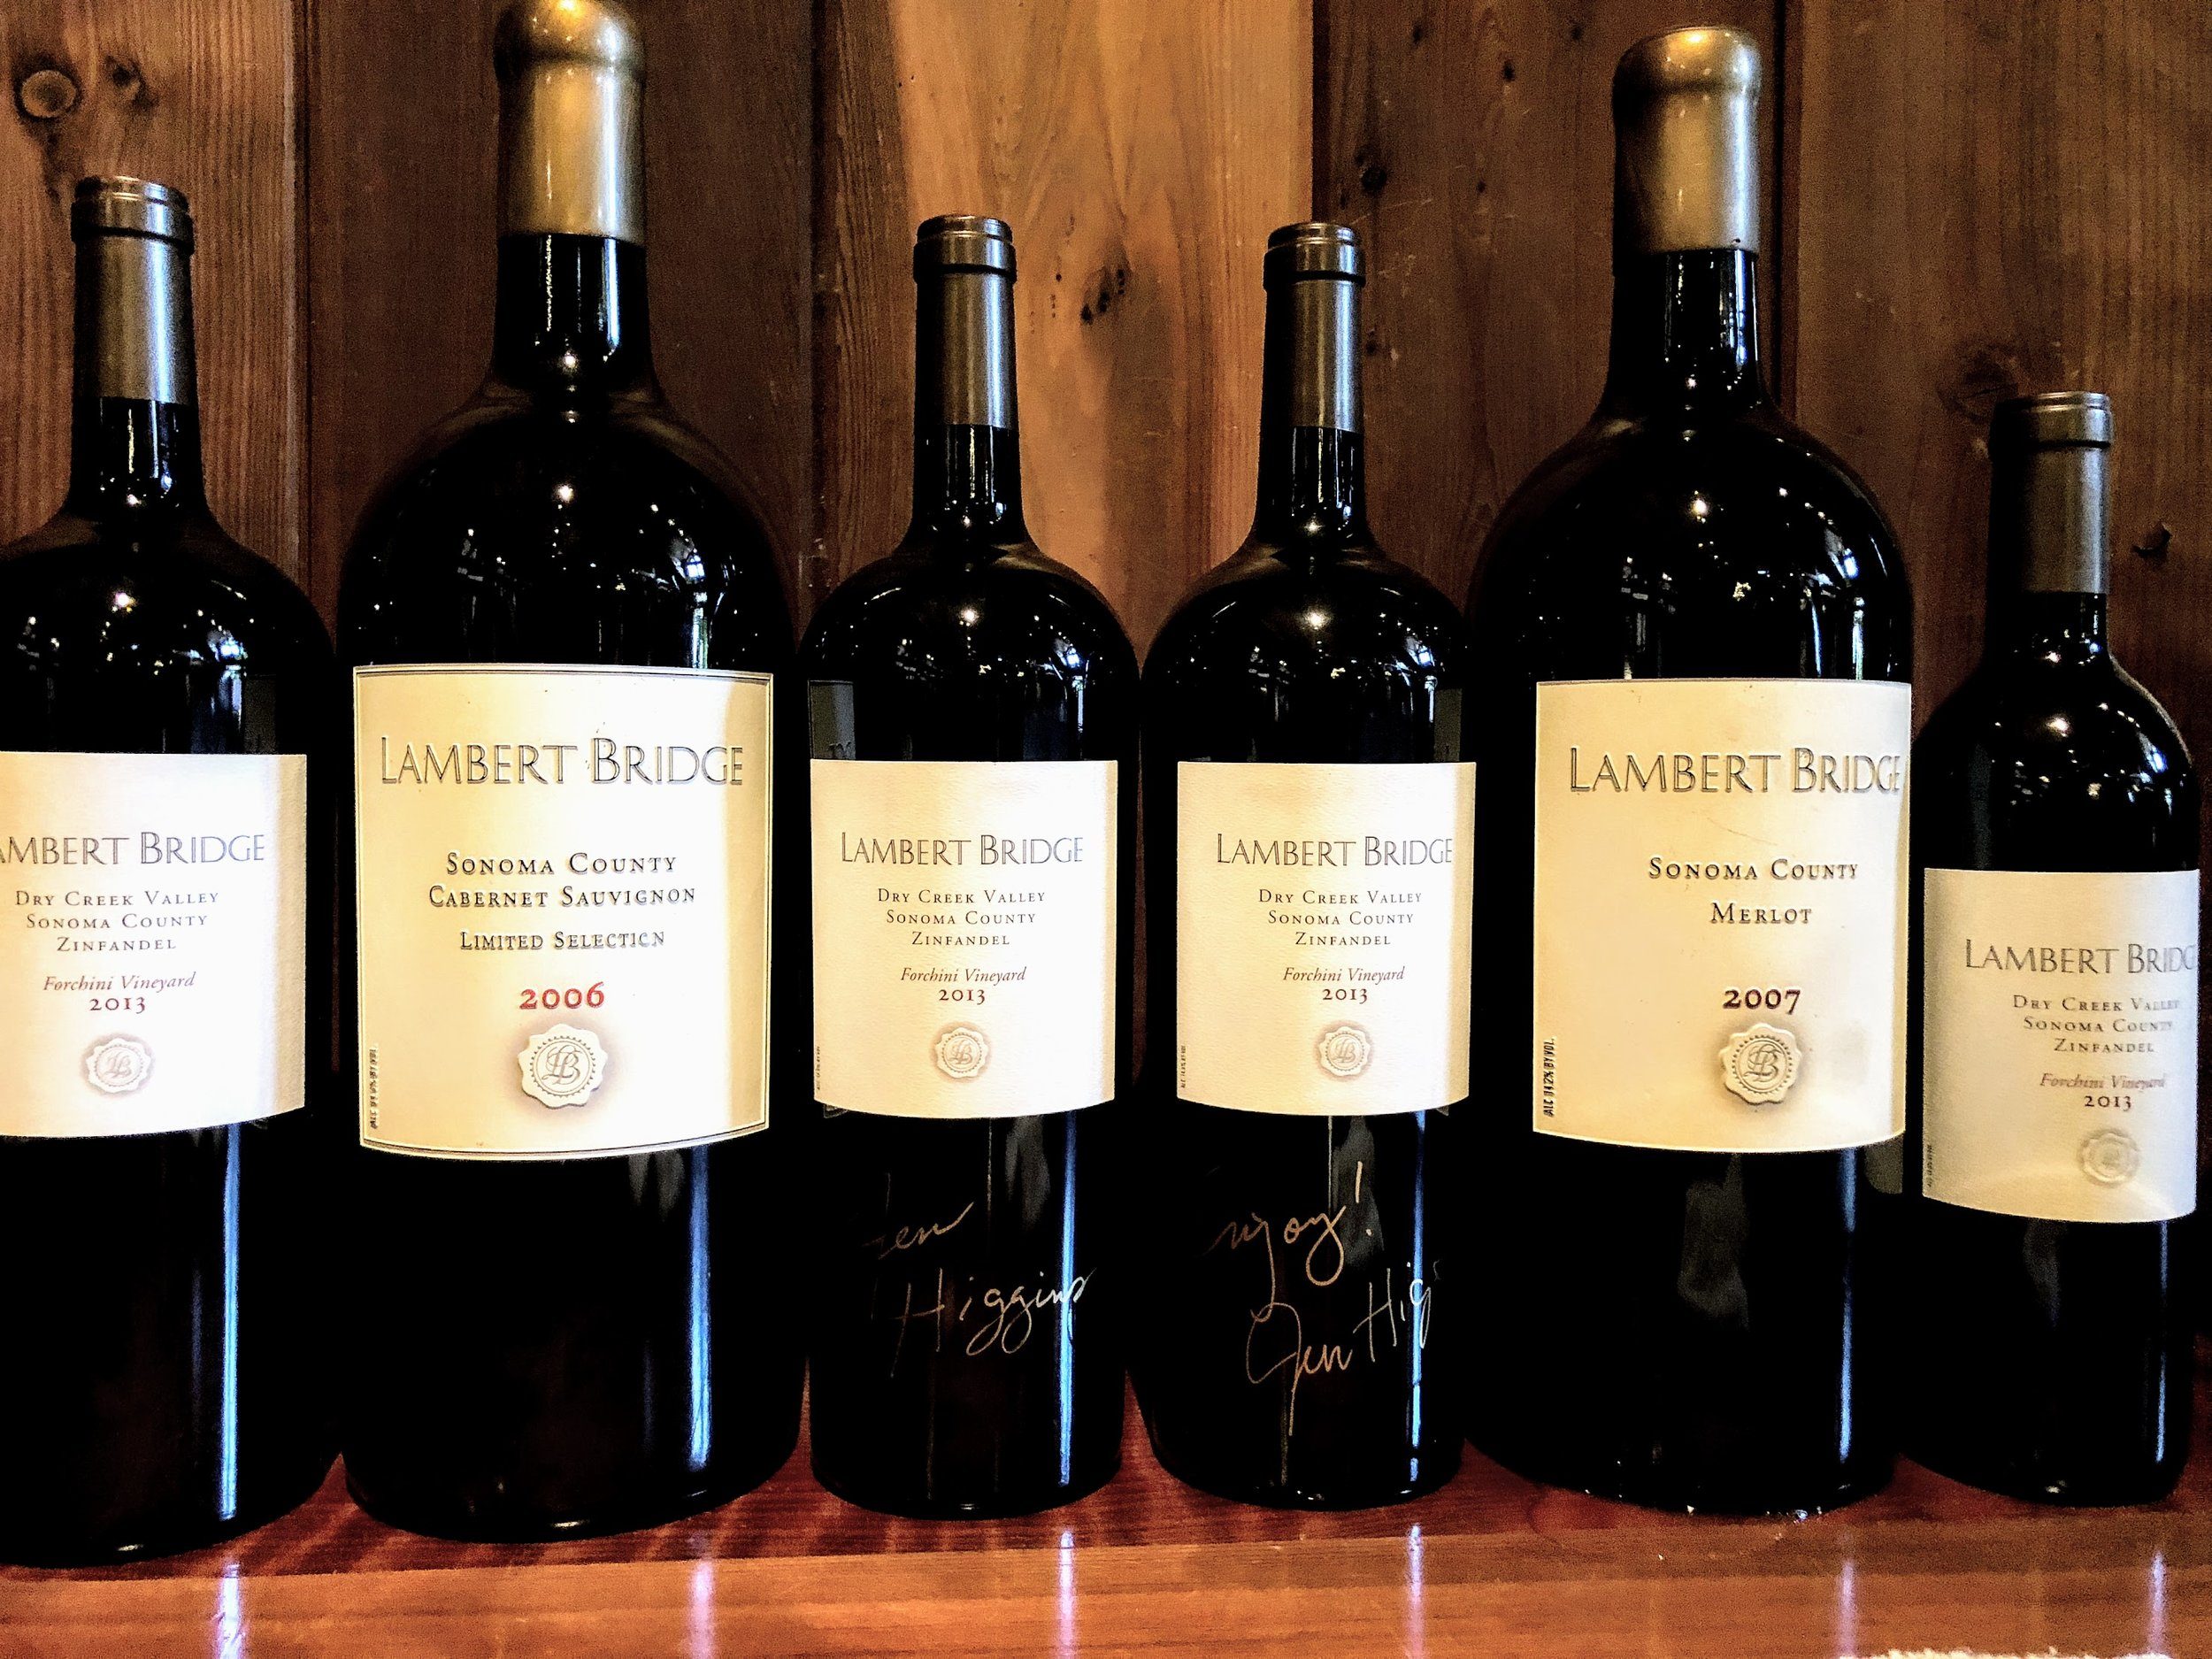 Lambert Bridge Wines